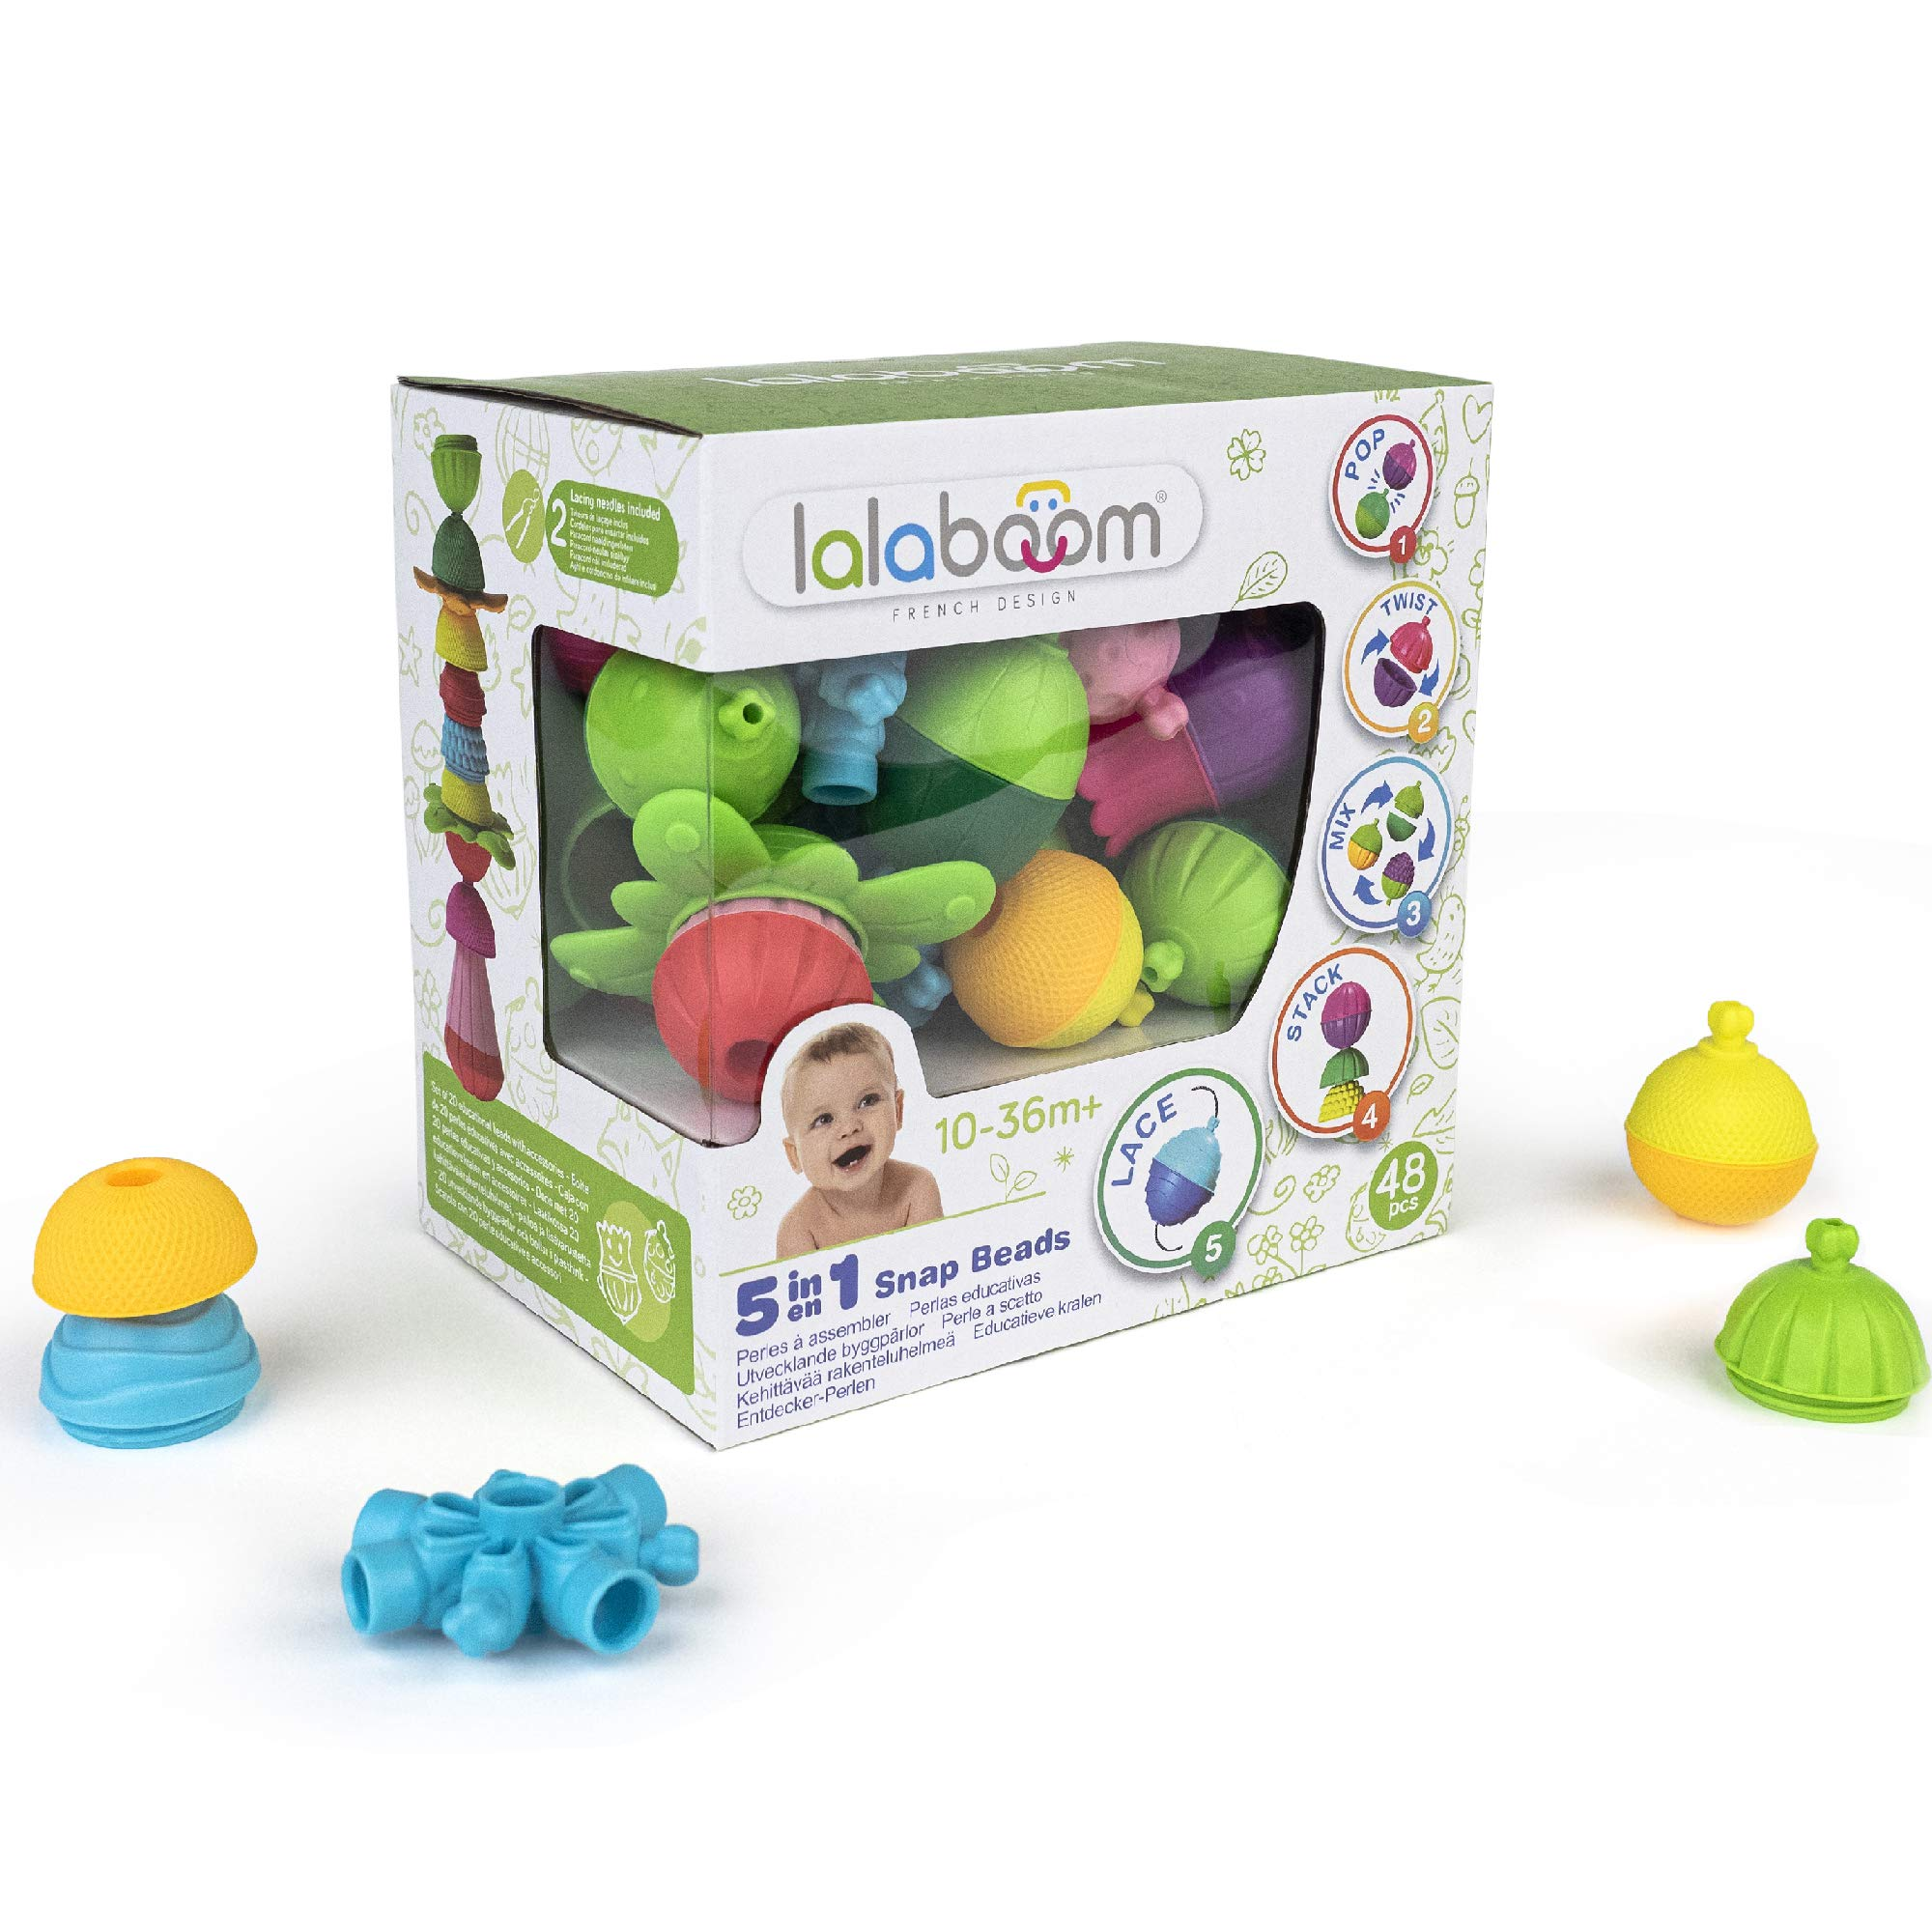 Lalaboom - Preschool Educational Beads - Montessori Shapes and Colors Construction Game and Learning Toy for Babies and…